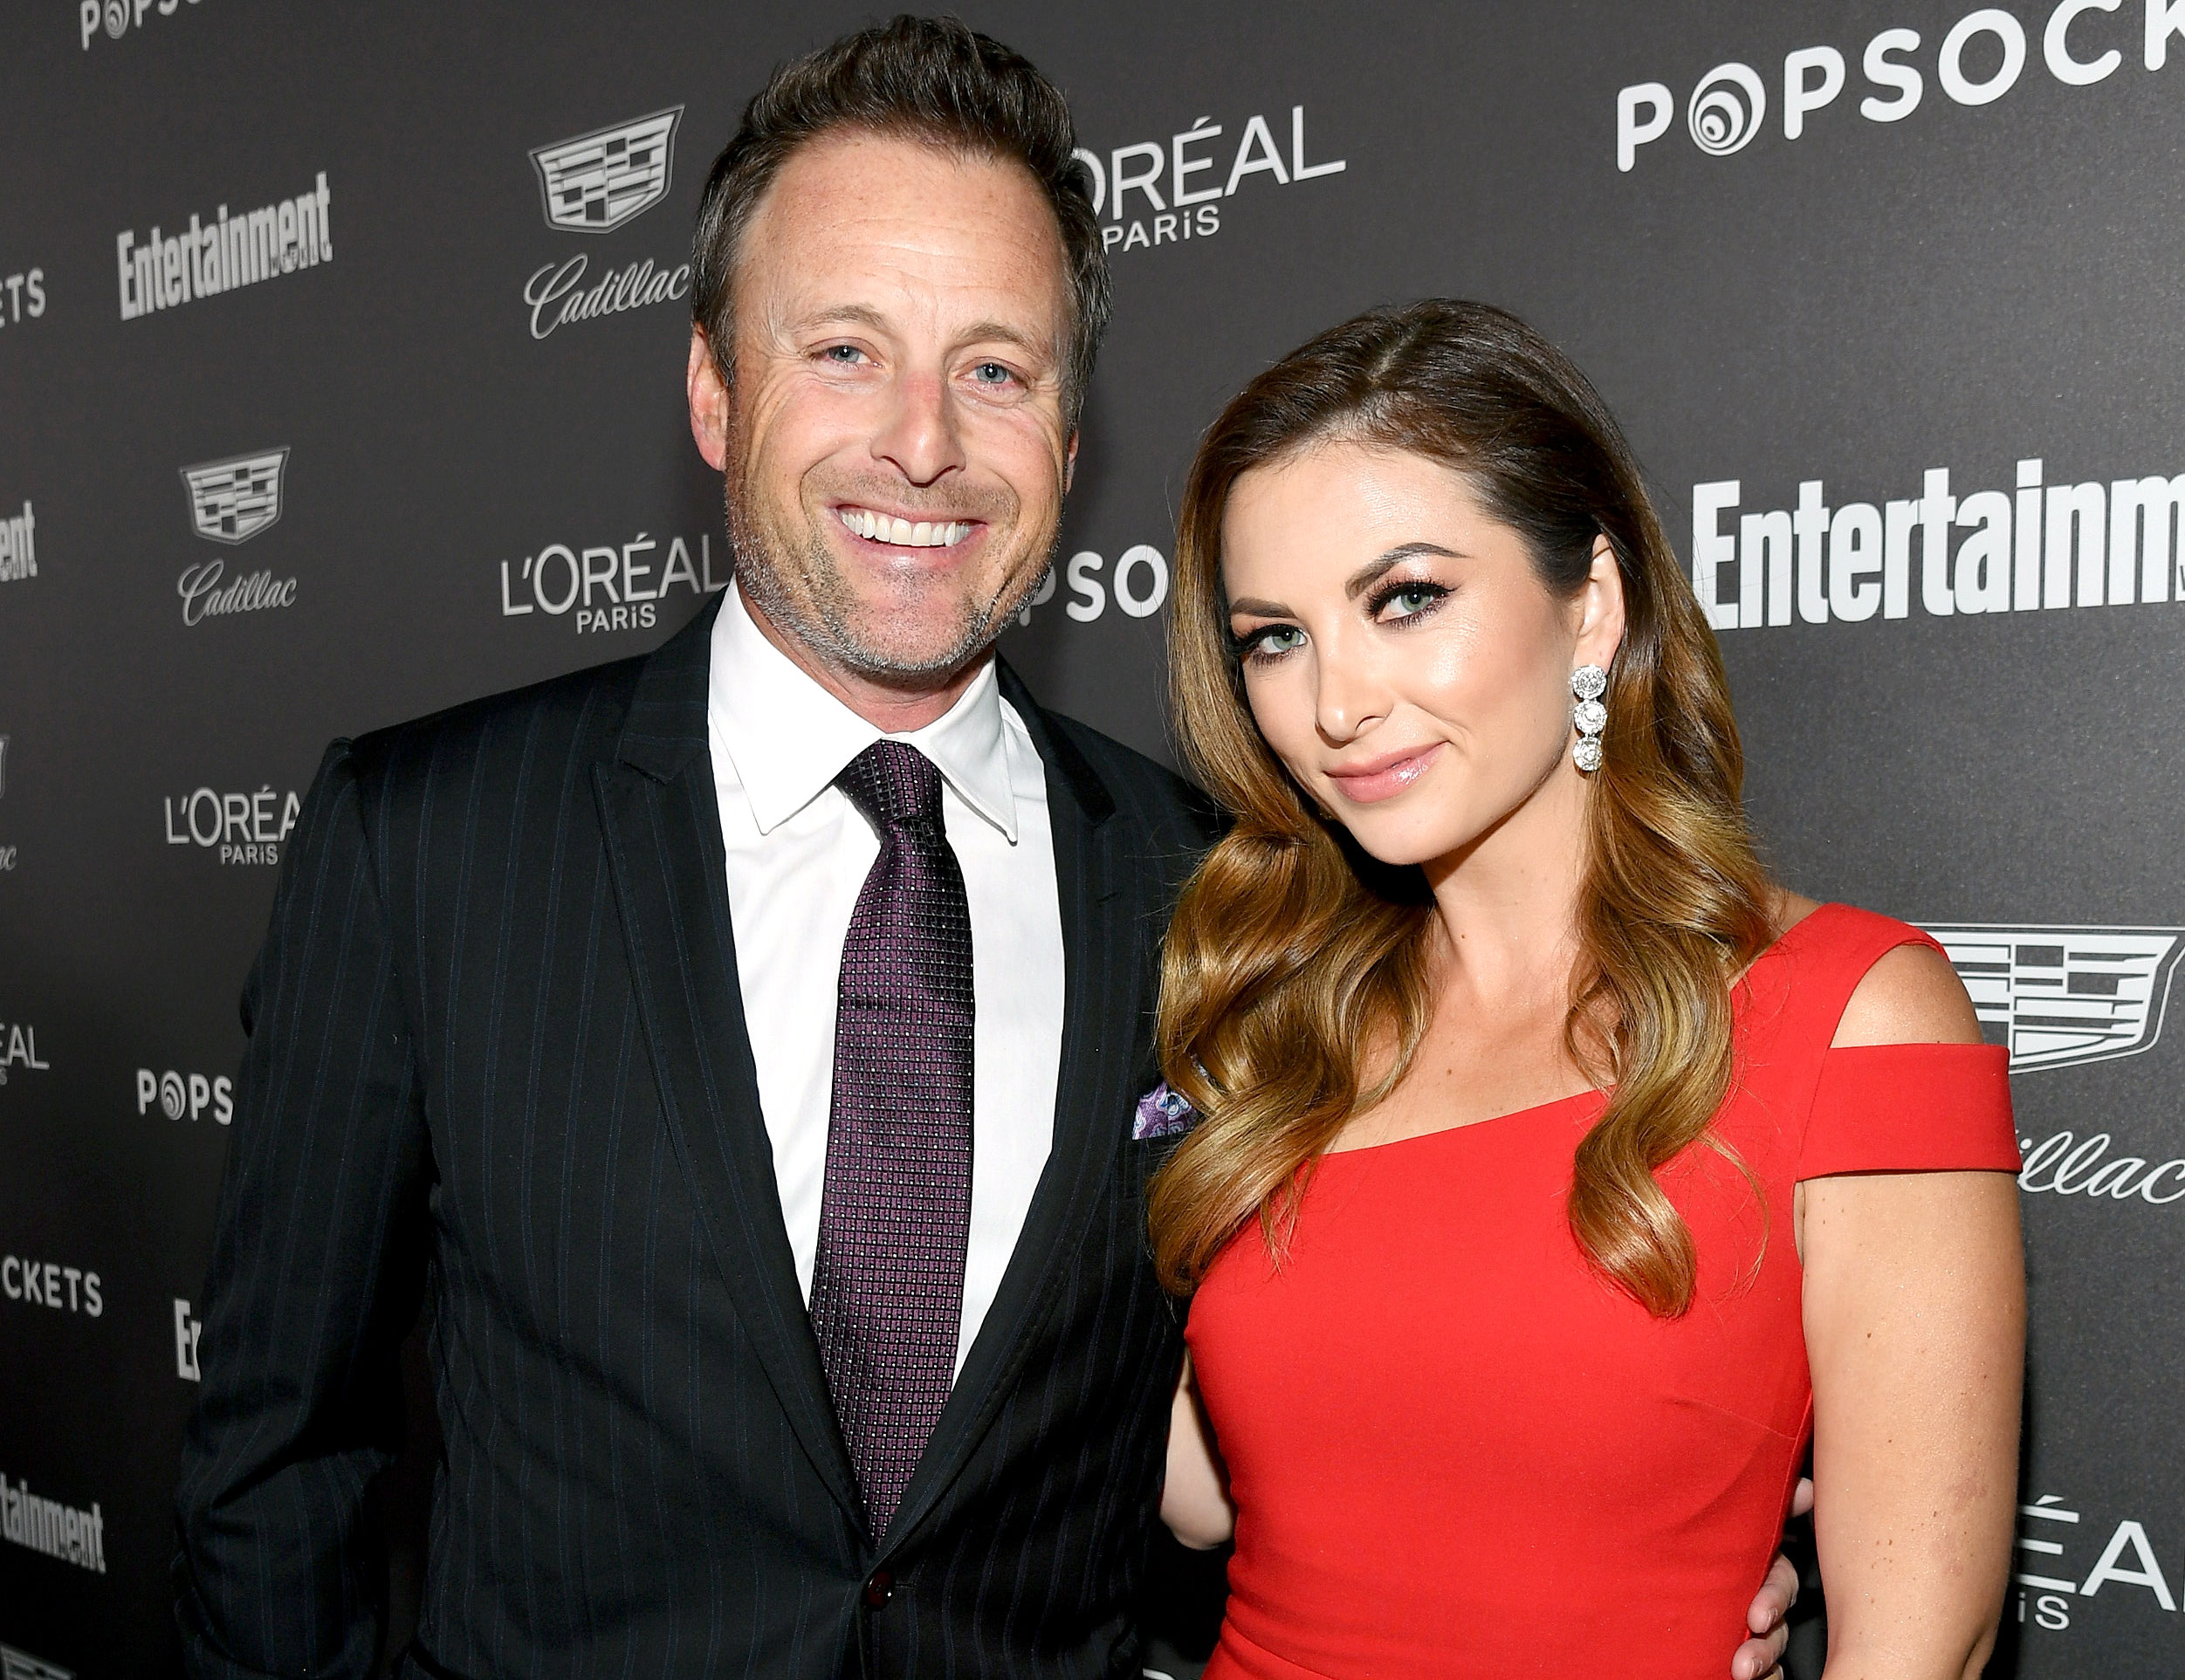 Chris Harrison Makes Red Carpet Debut With New Girlfriend Lauren Zima - Chris Harrison and Lauren Zima attend Entertainment Weekly Celebrates Screen Actors Guild Award Nominees sponsored by L'Oreal Paris, Cadillac, And PopSockets at Chateau Marmont on January 26, 2019 in Los Angeles, California.